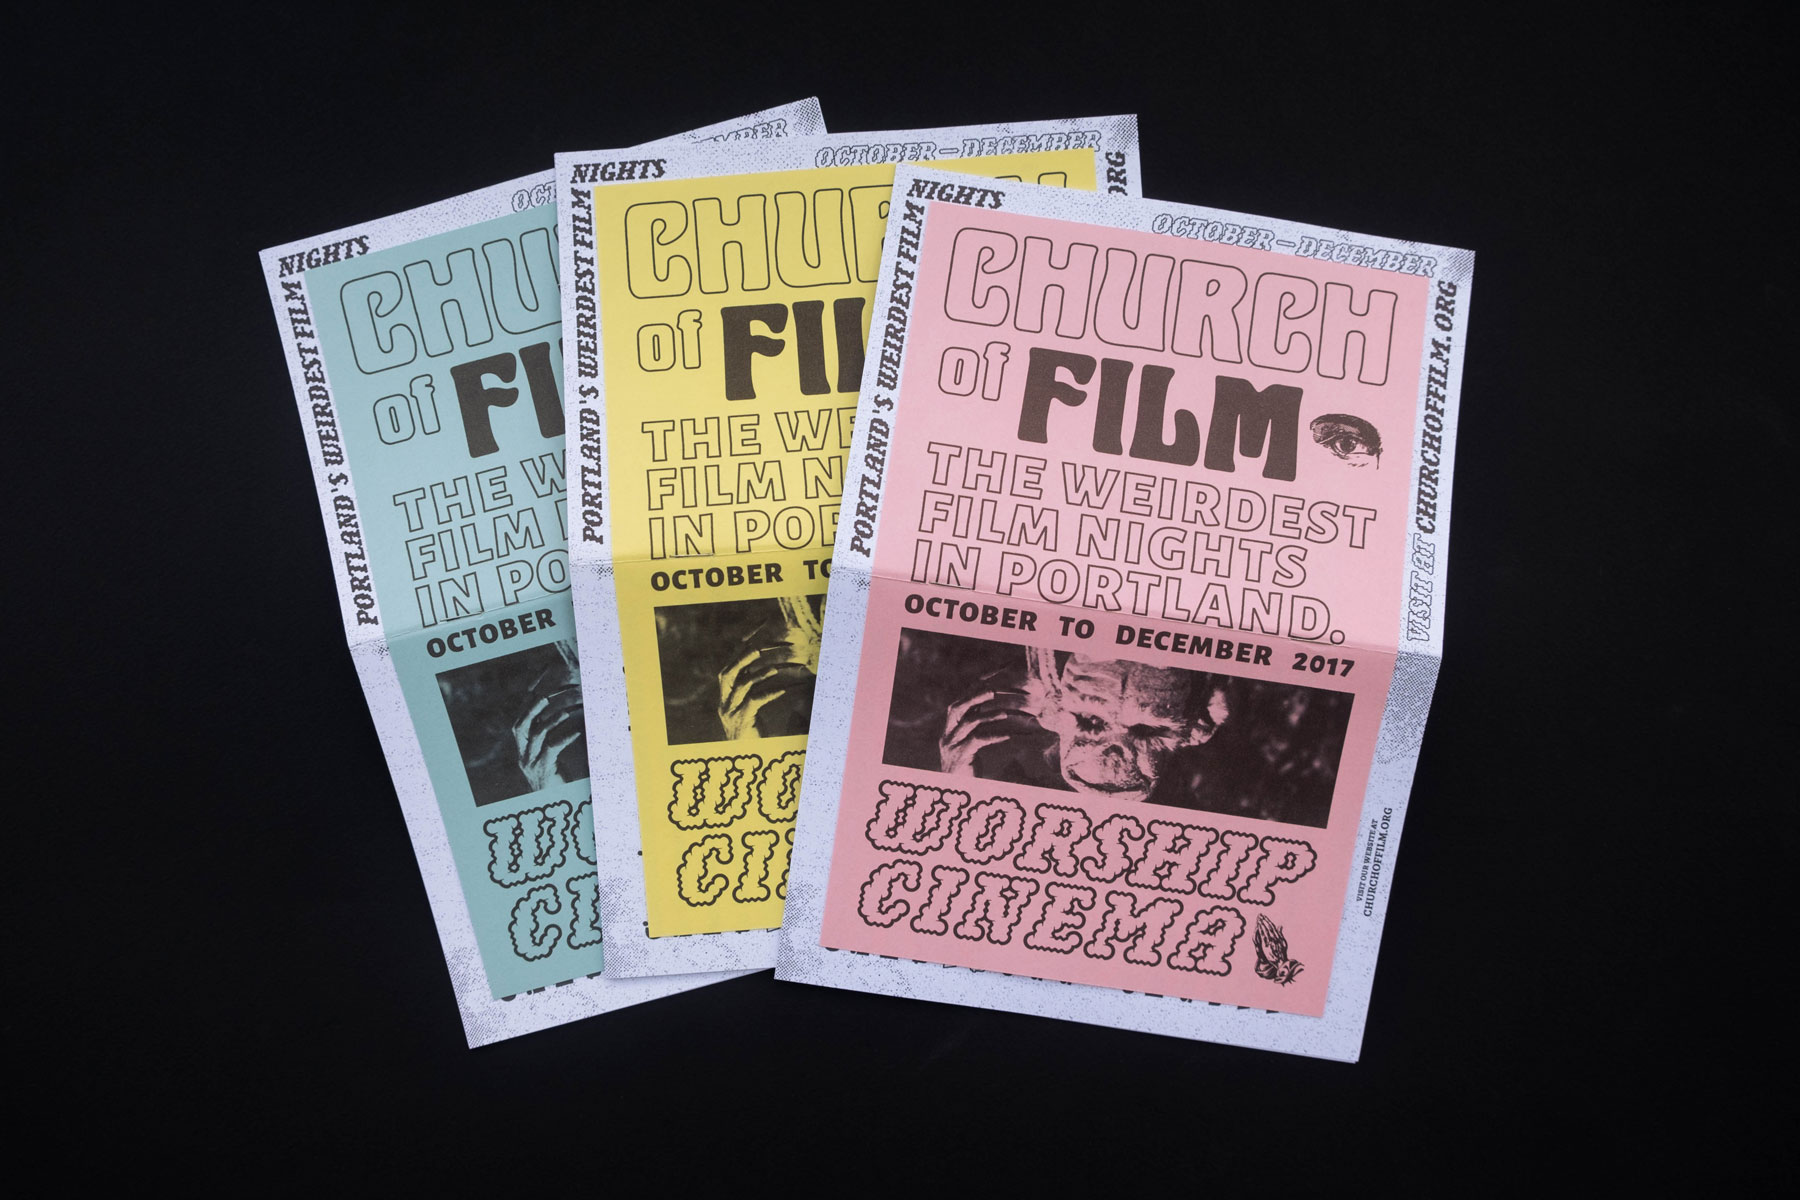 Church of Film